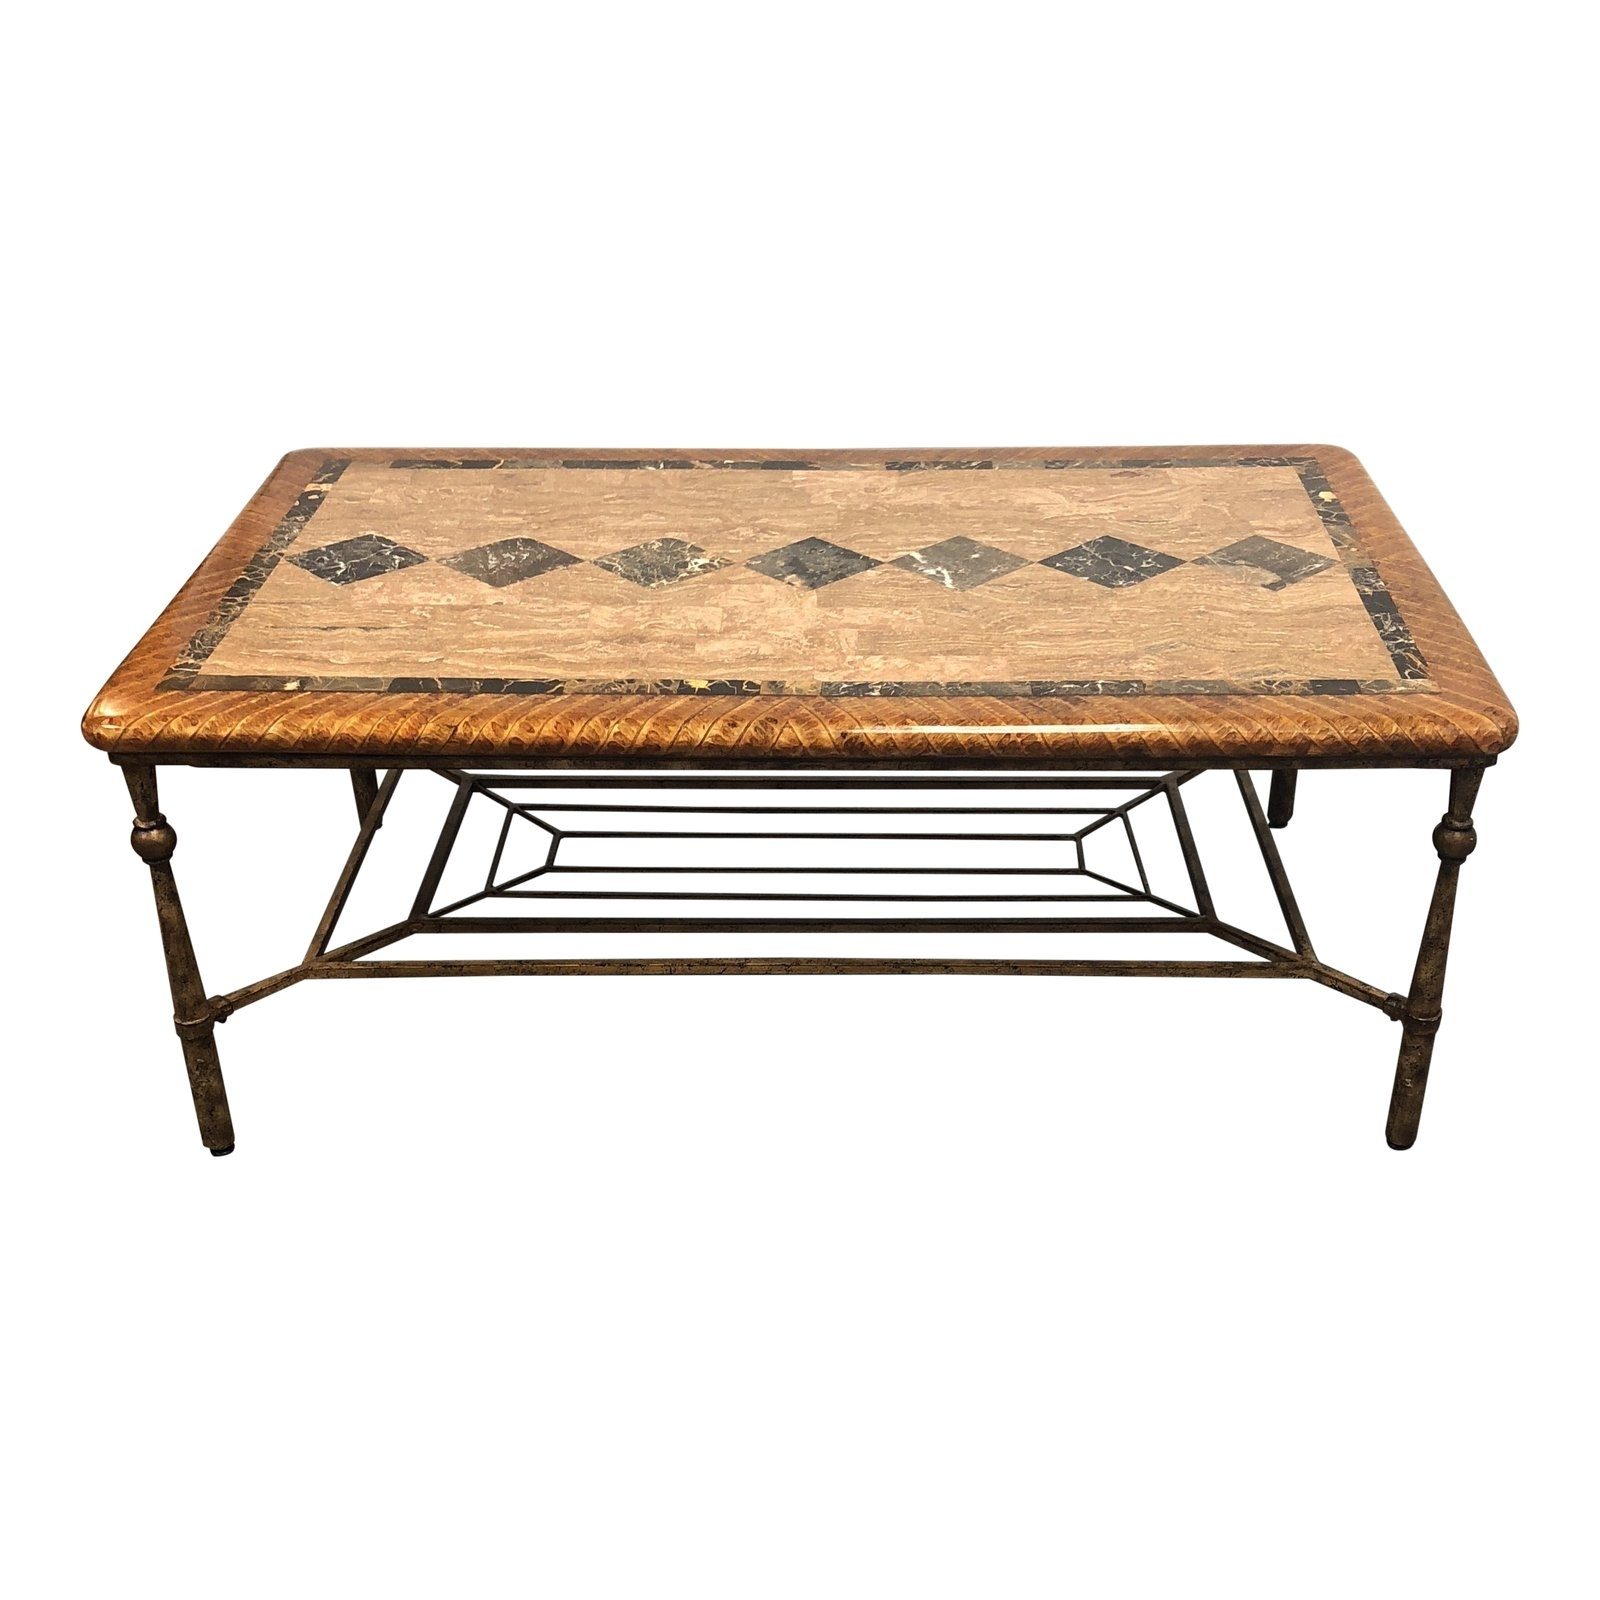 Hooker Furniture Stone Top Coffee Table – Design Plus Gallery Within Stone Top Coffee Tables (View 15 of 30)